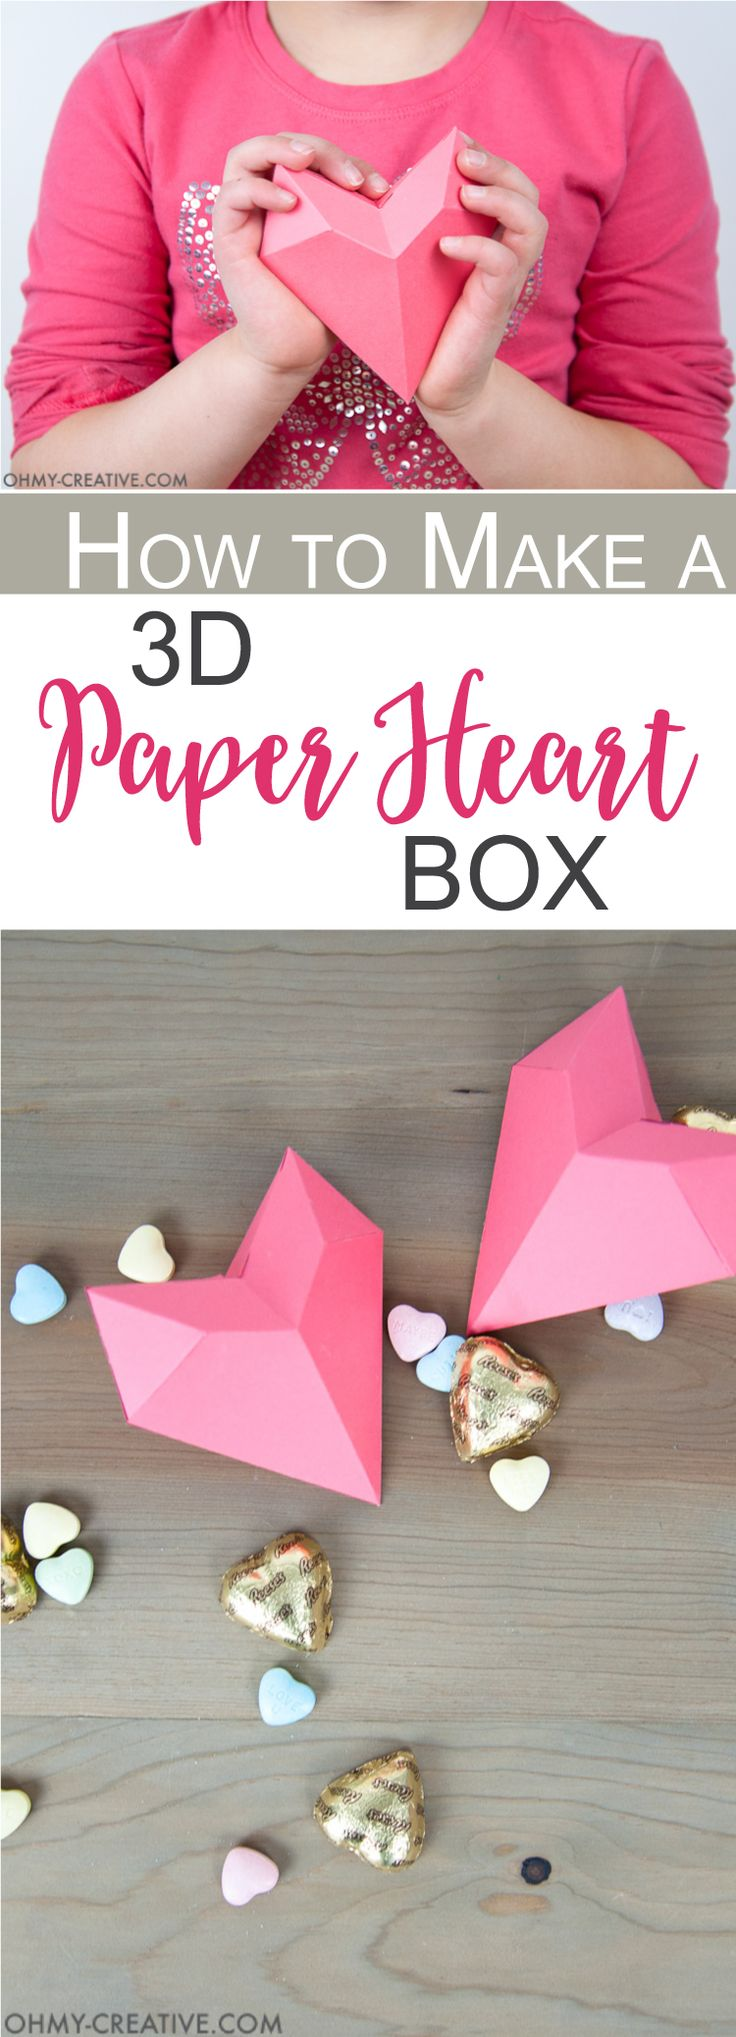 Best 10+ Valentine gifts ideas on Pinterest | Diy valentine's ...